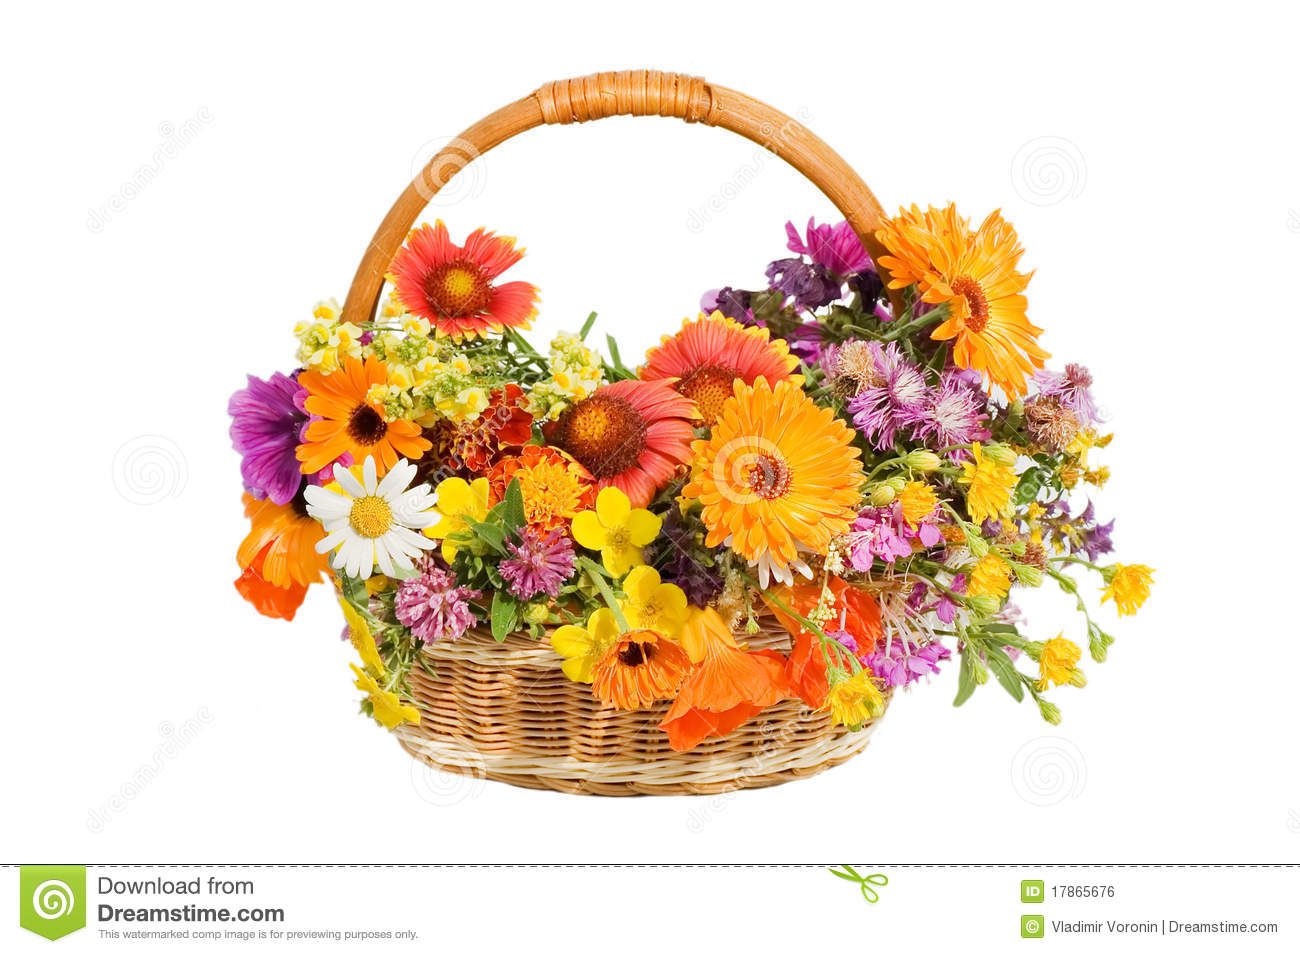 Beautiful flowers in a basket isolated on white